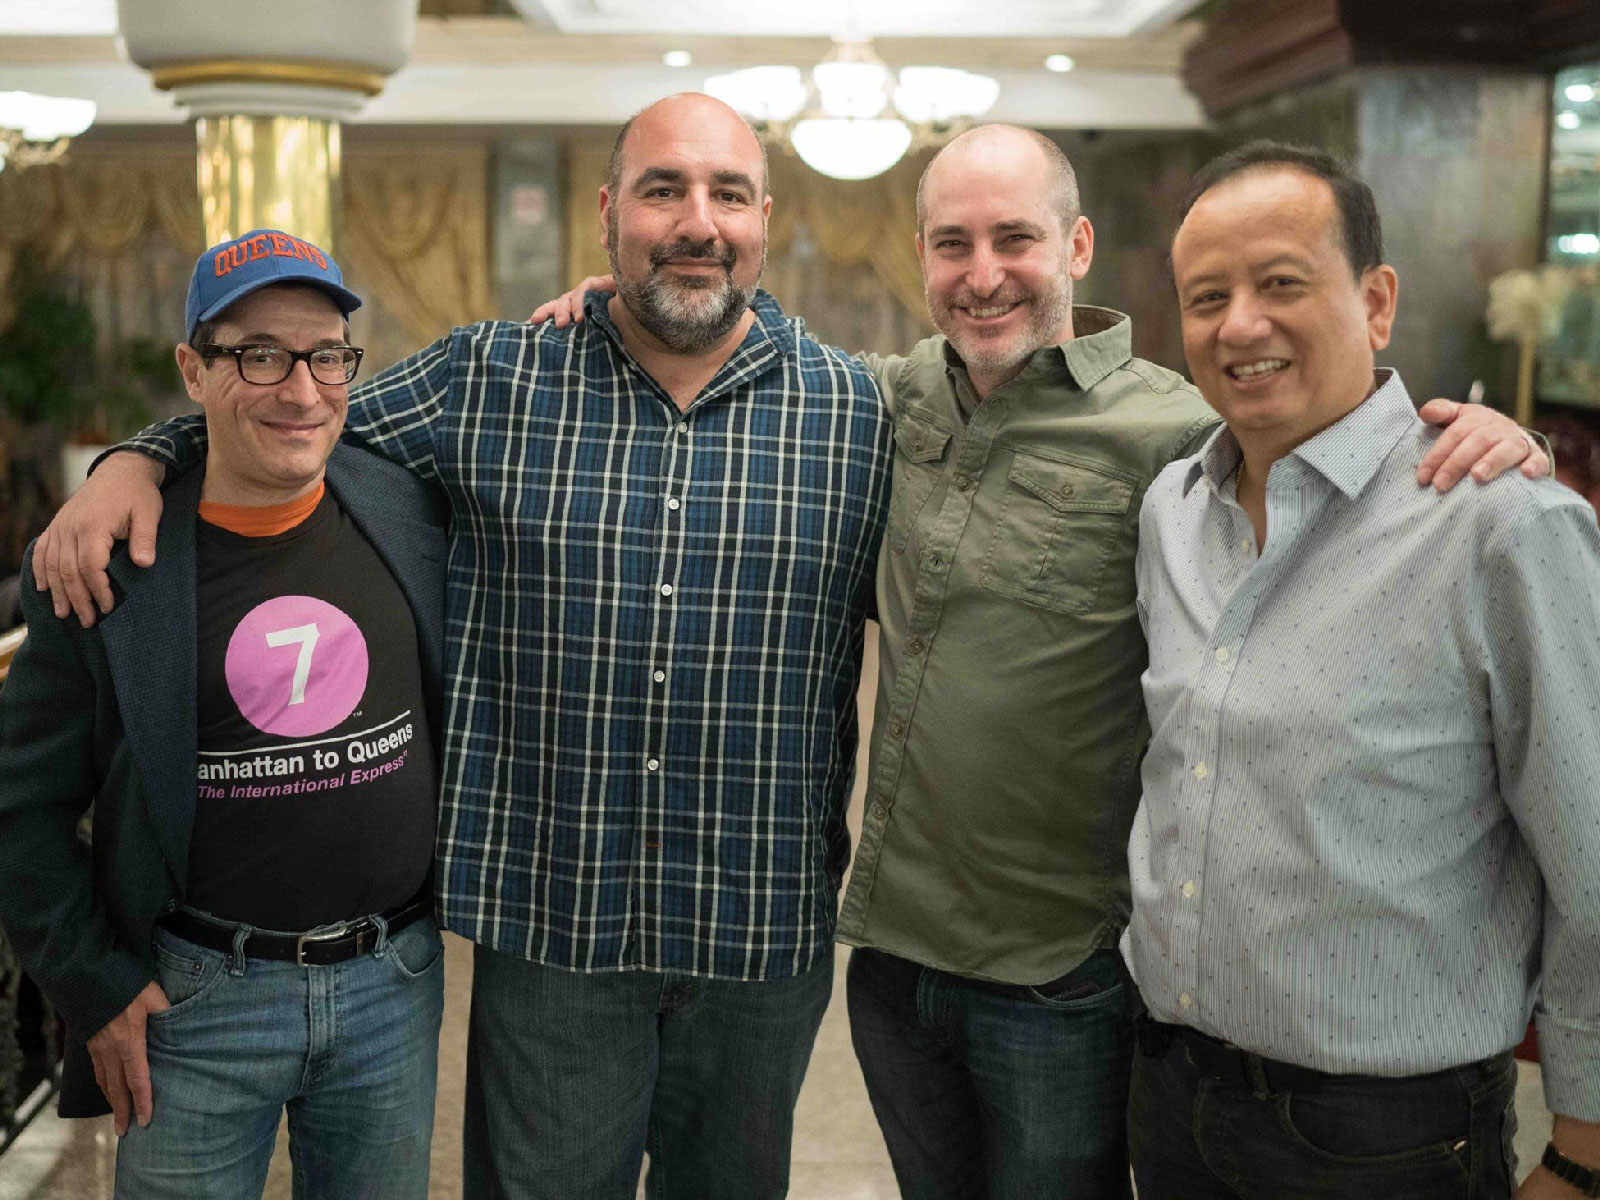 Queens Chefs Band Together to Support Immigrant Families